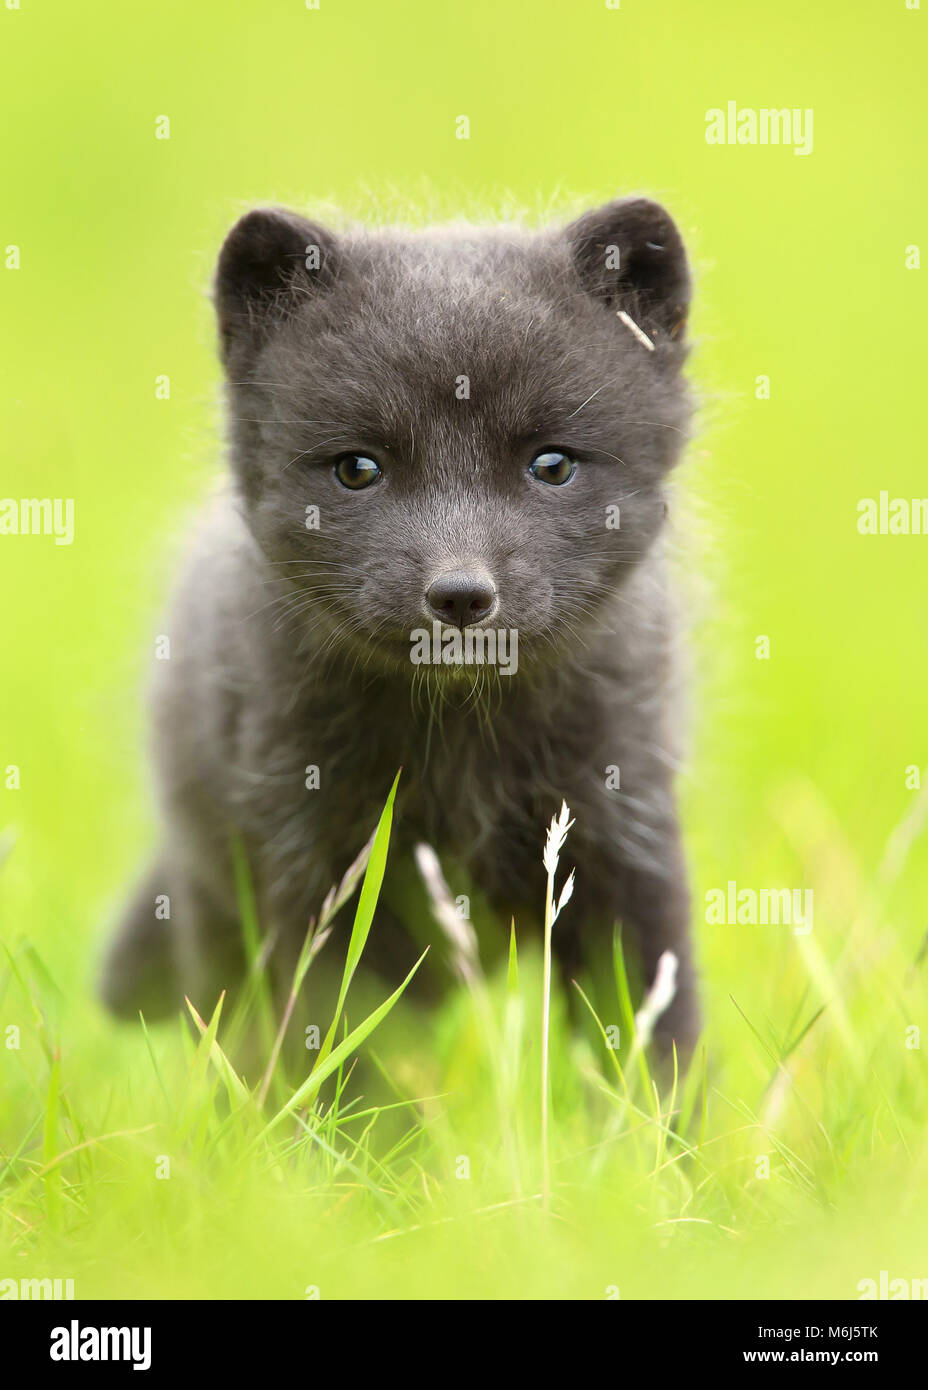 Close up of an Arctic fox cub in the grass field, Iceland. - Stock Image